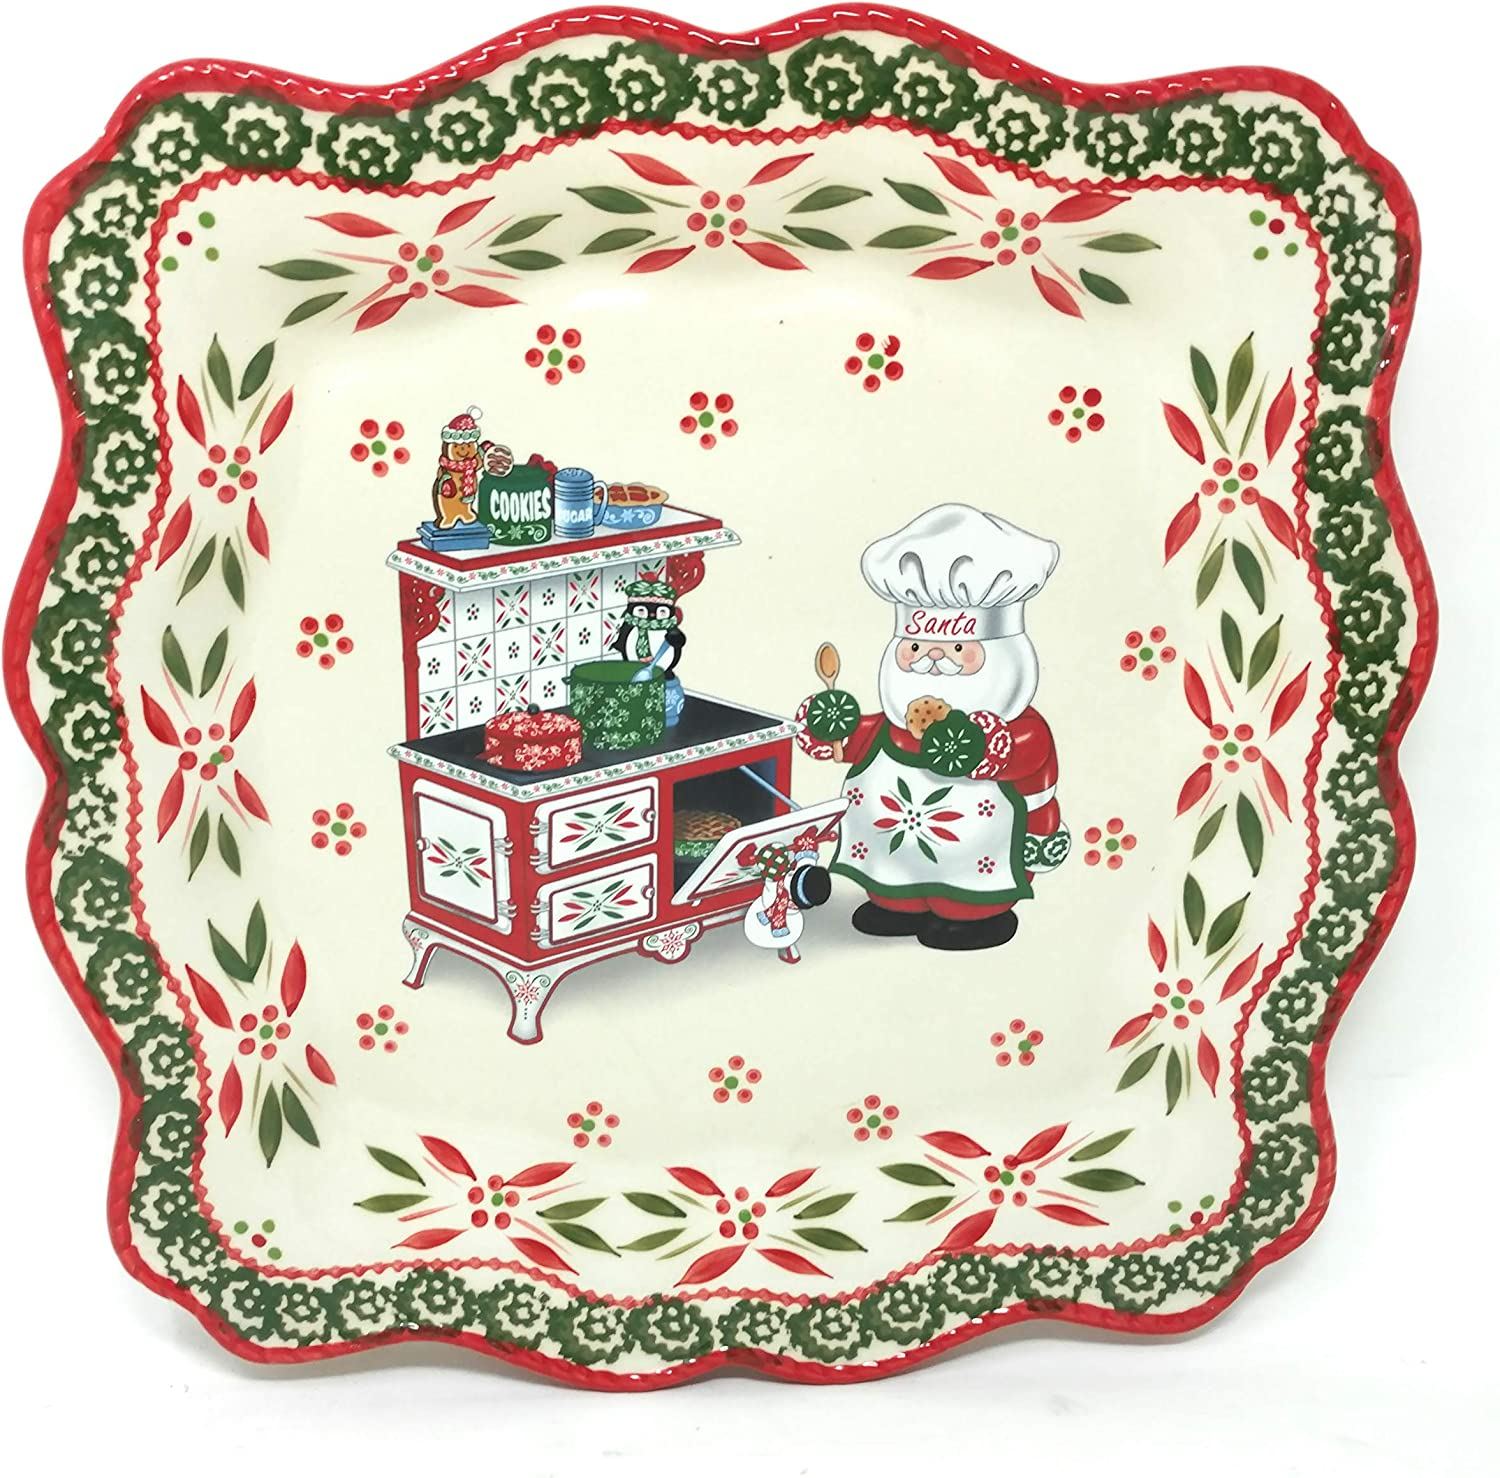 "Temp-tations 13.25"" Square Cookie Sheet, Platter, Cake Plate, OR Cheese & Cracker Tray, Holiday Whimsy (Santa by the Oven)"